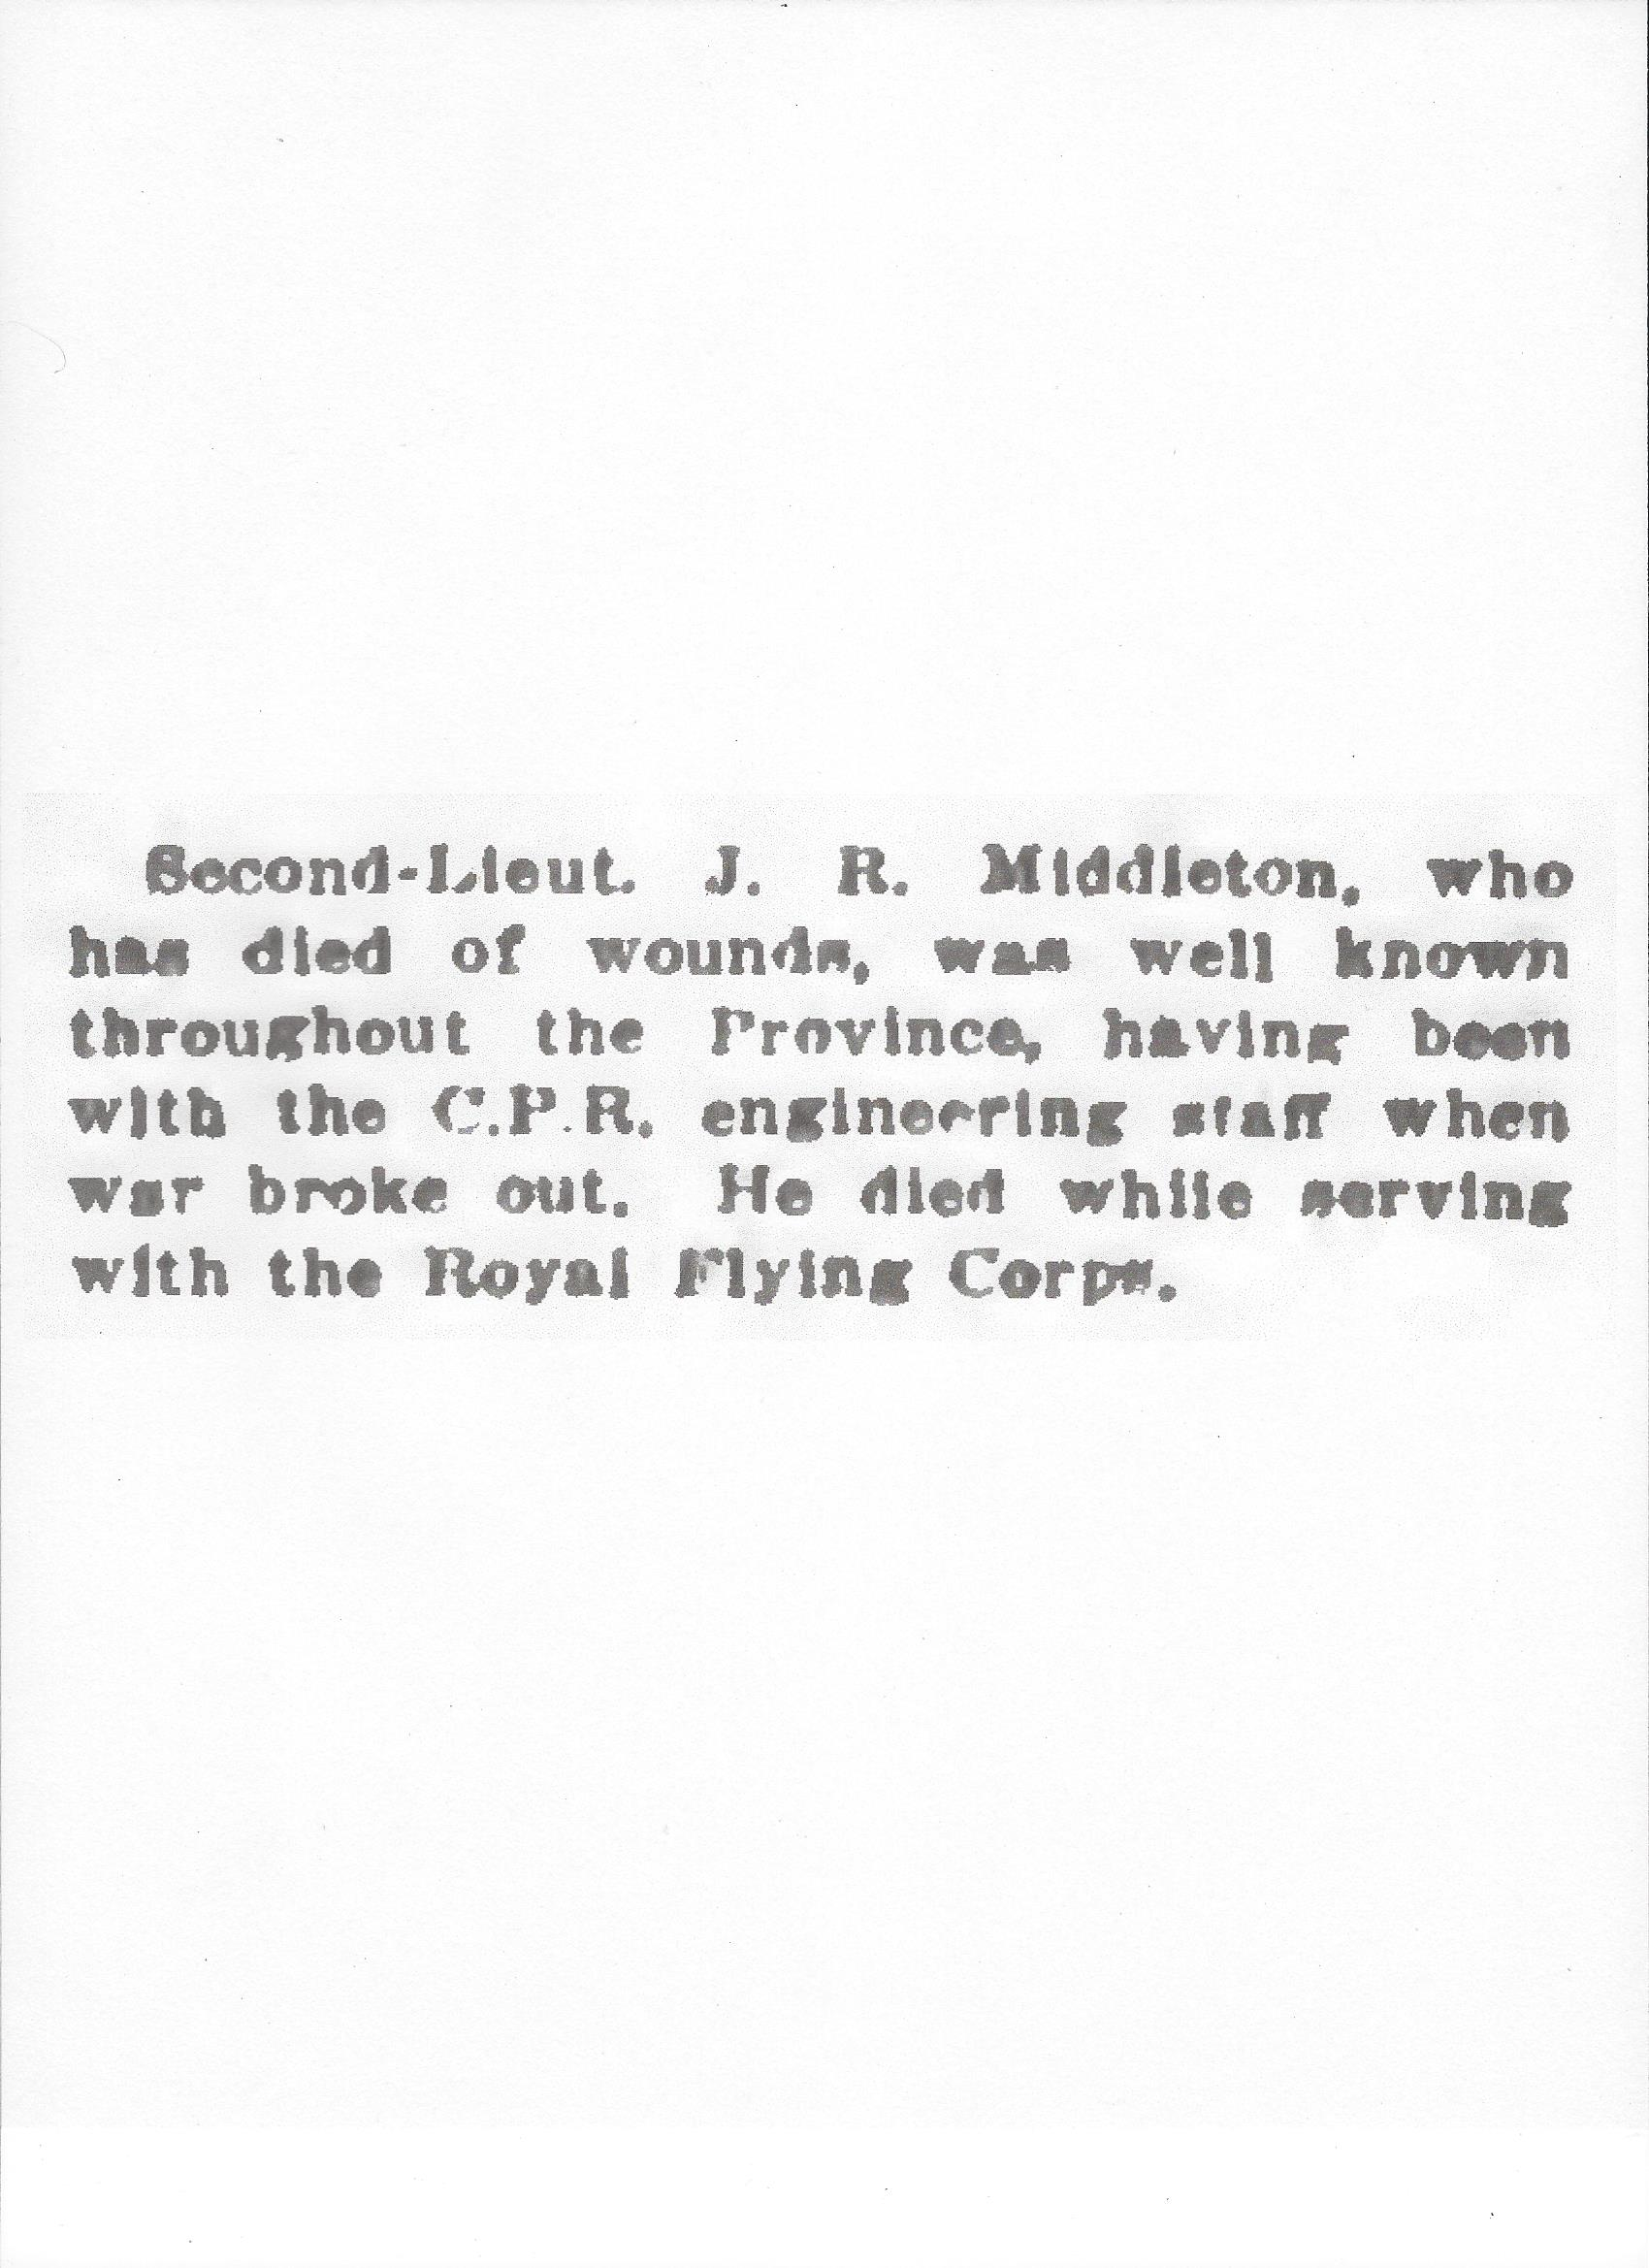 Newspaper clipping– From the Daily Colonist of August 28, 1917. Image taken from web address of http://archive.org/stream/dailycolonist59y224uvic#page/n0/mode/1up